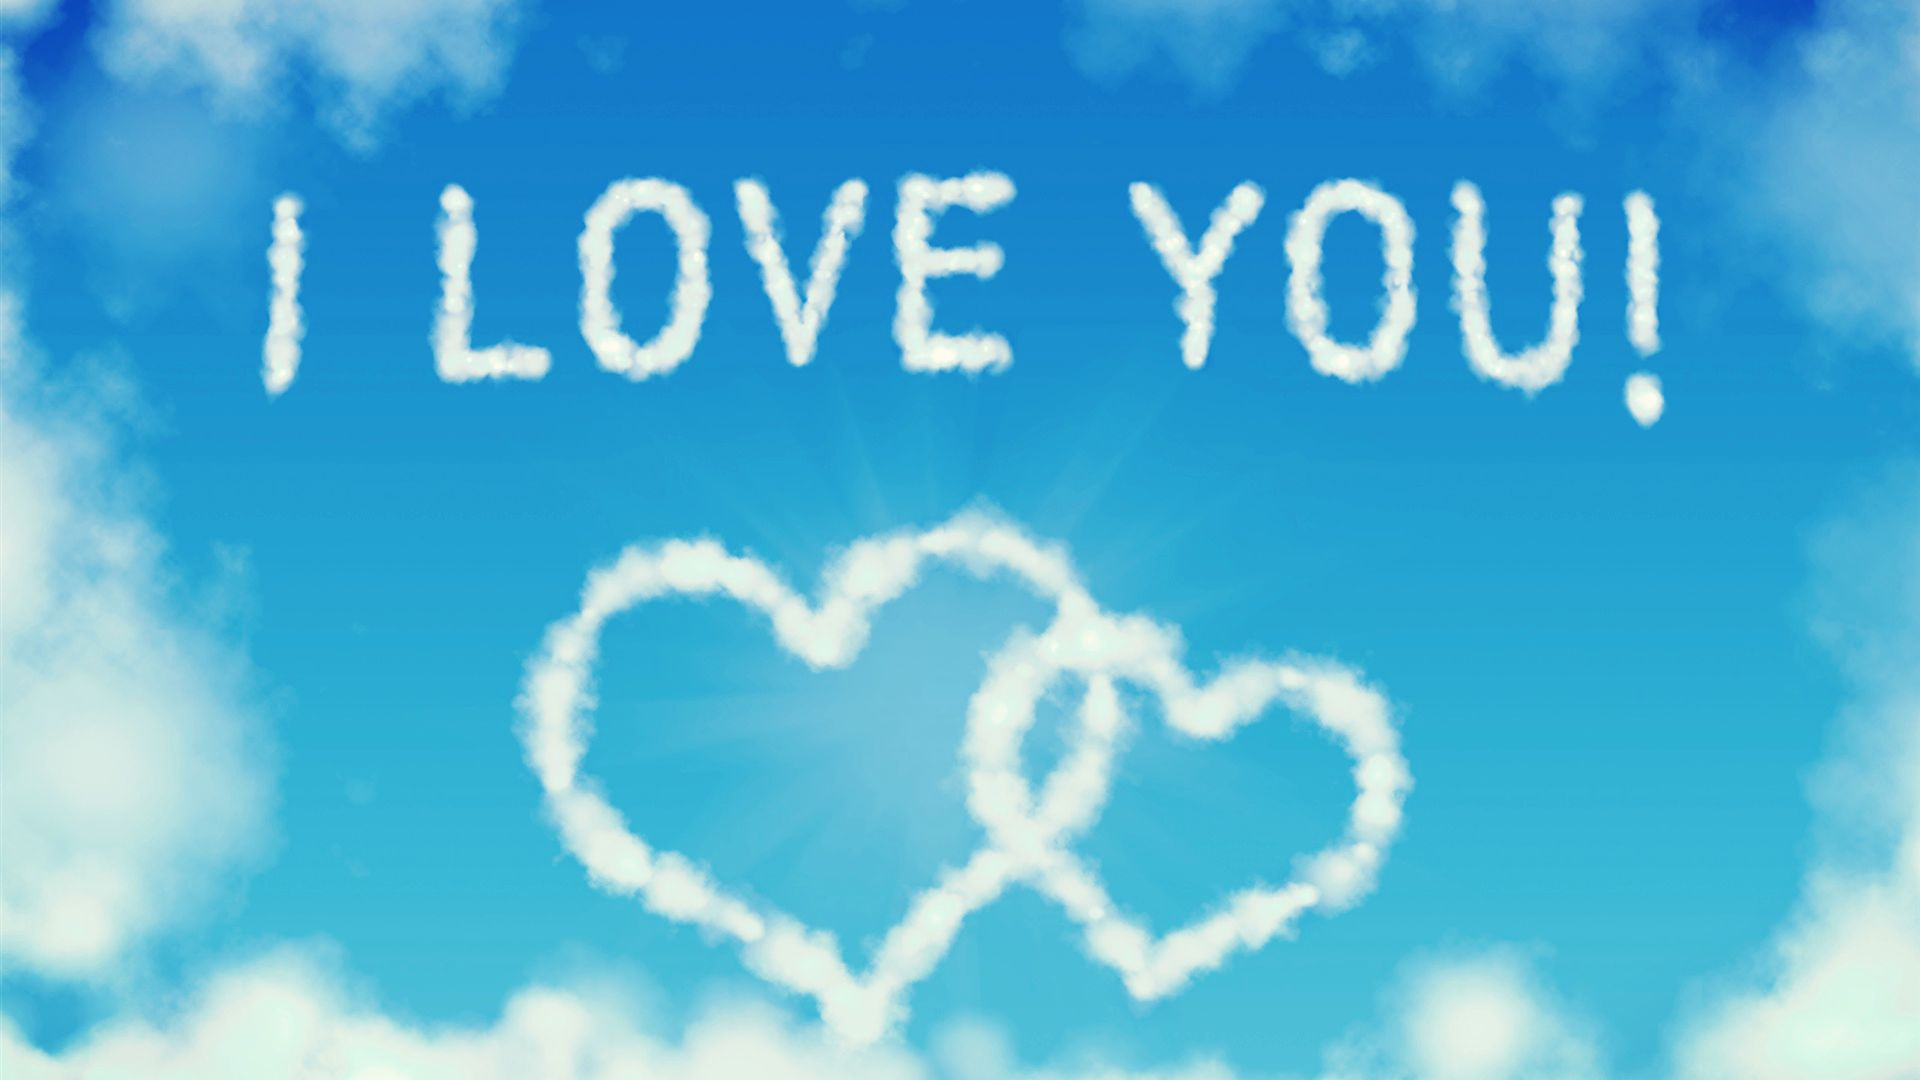 I Love You Heart Wallpaper 1920x1080